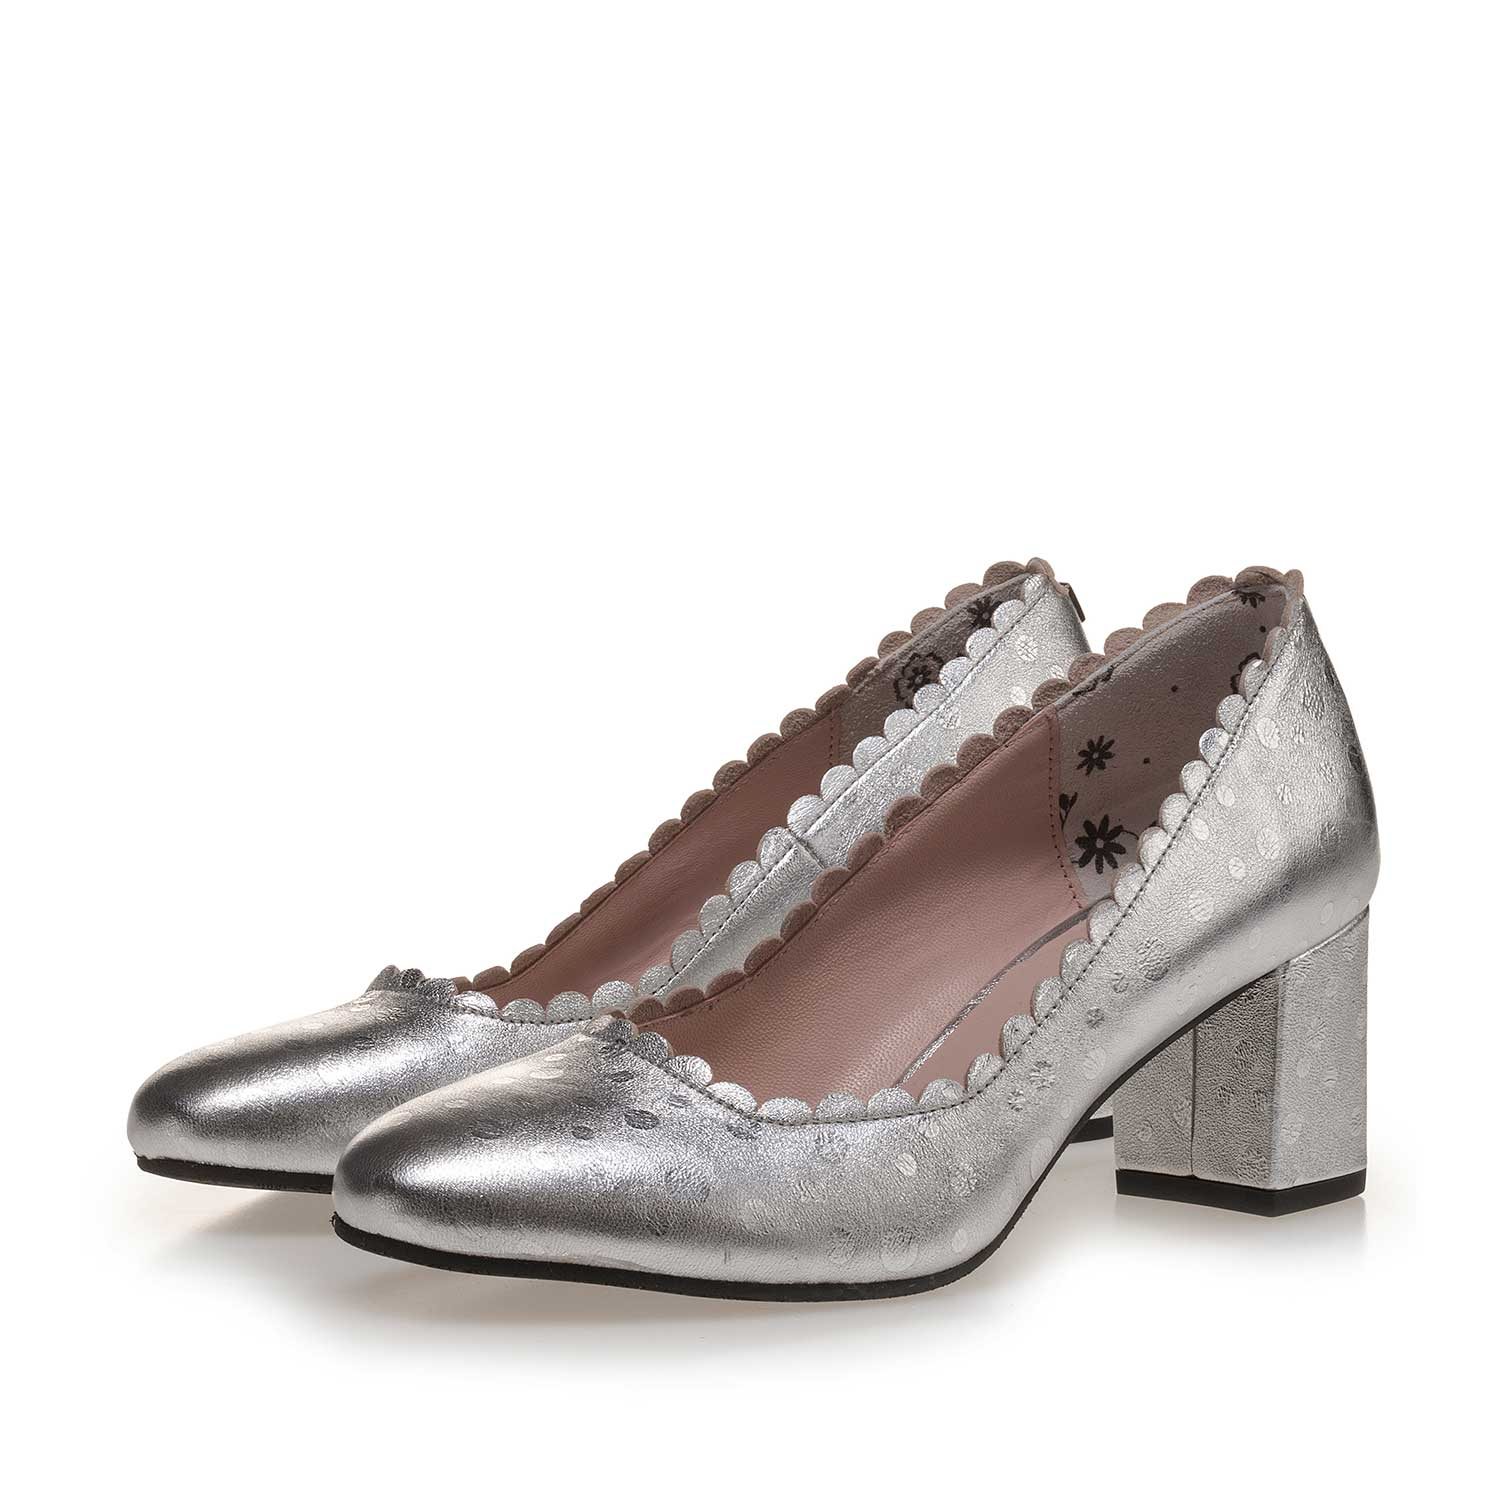 85226/02 - Silver-coloured patterned leather pumps